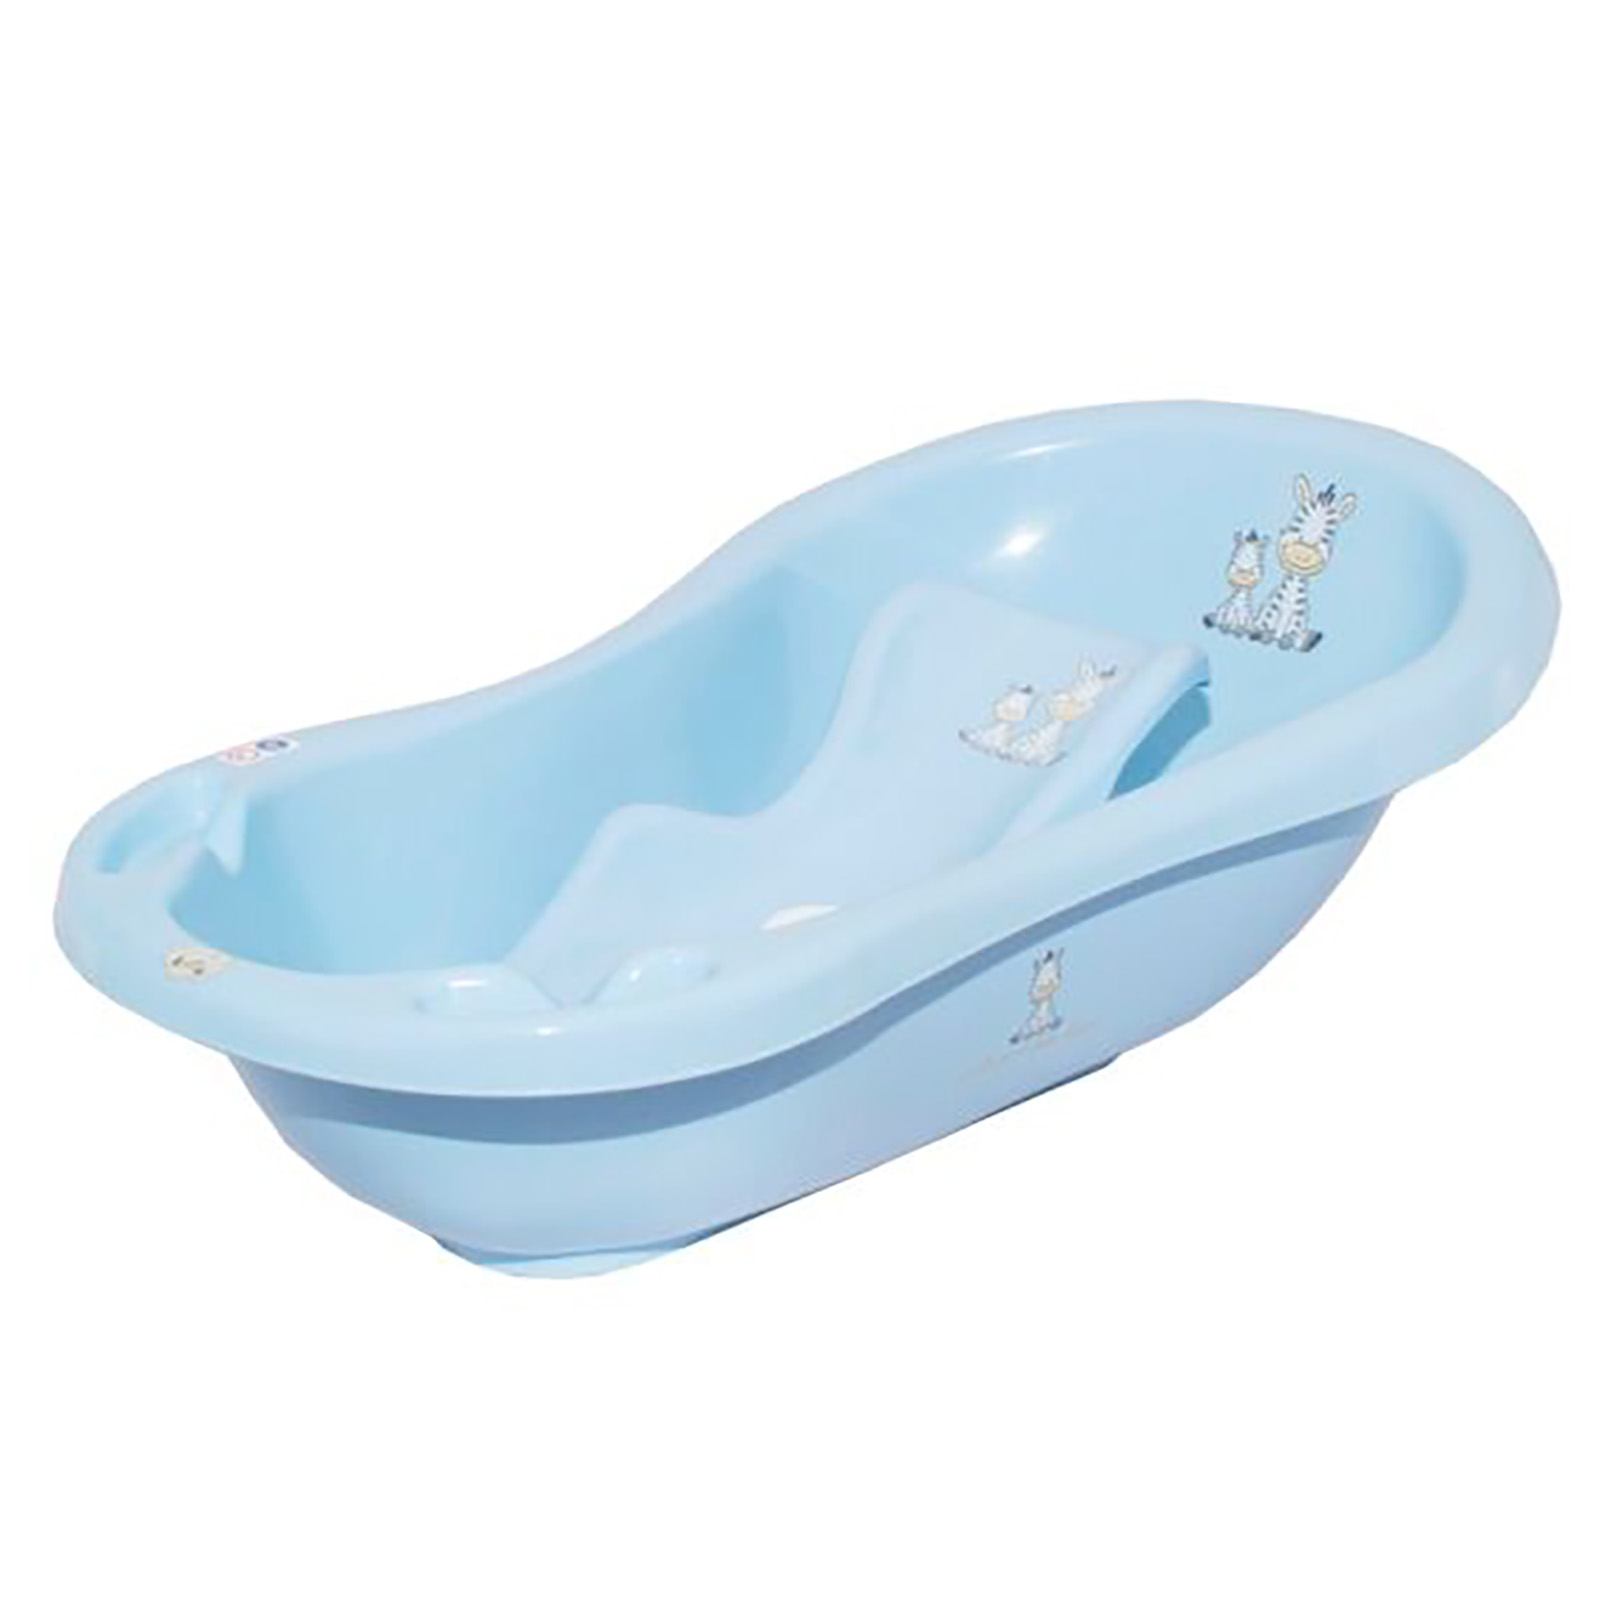 Maltex Baby Bath With Bath Seat - Zebra Blue | Buy at Online4baby